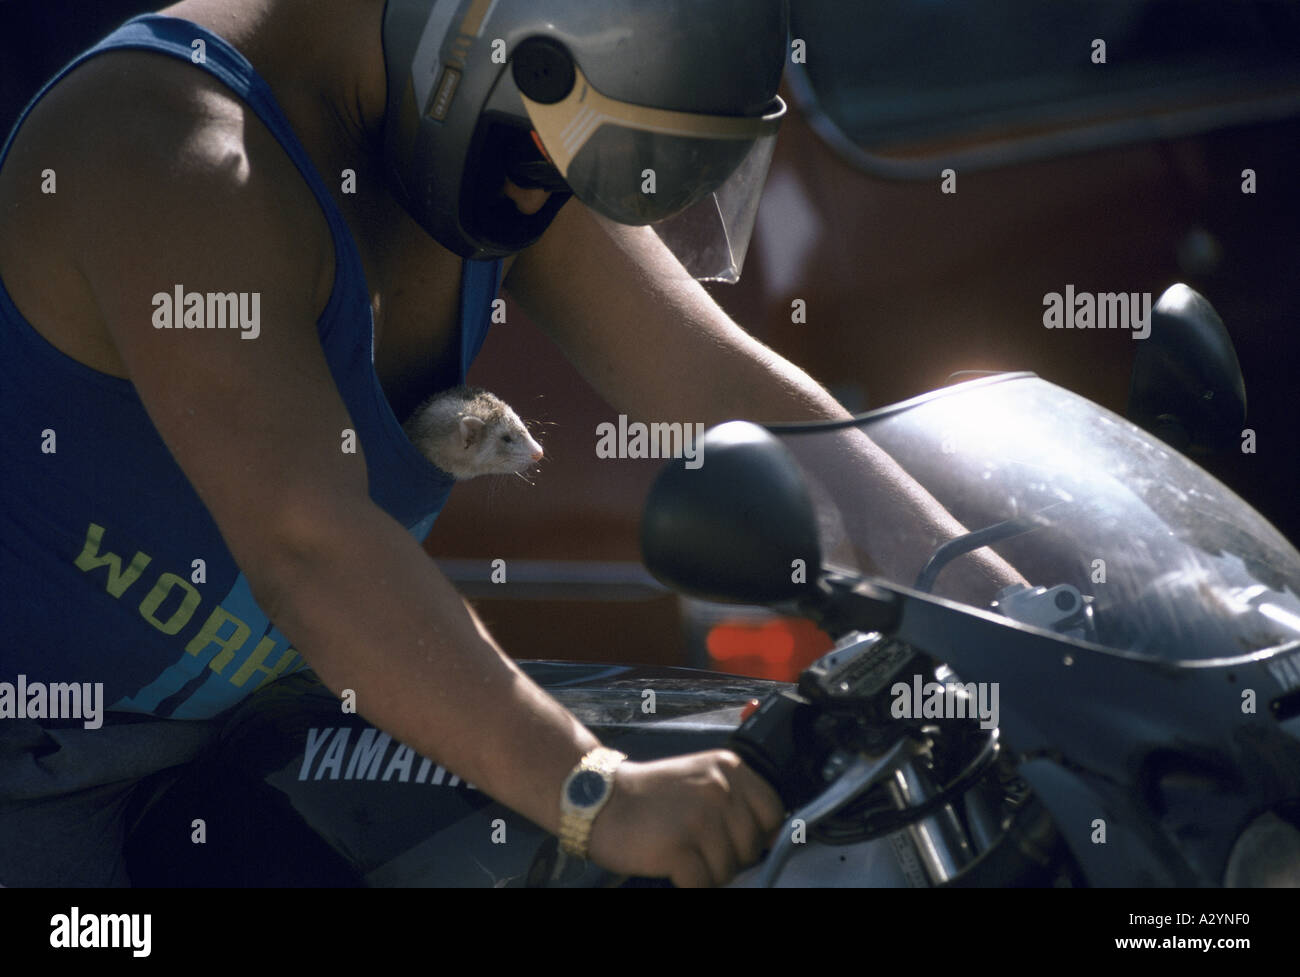 a man on a yamaha motorbike gazes fondly down from his helmet at the open mouthed ferret poking out of his blue tank top - Stock Image